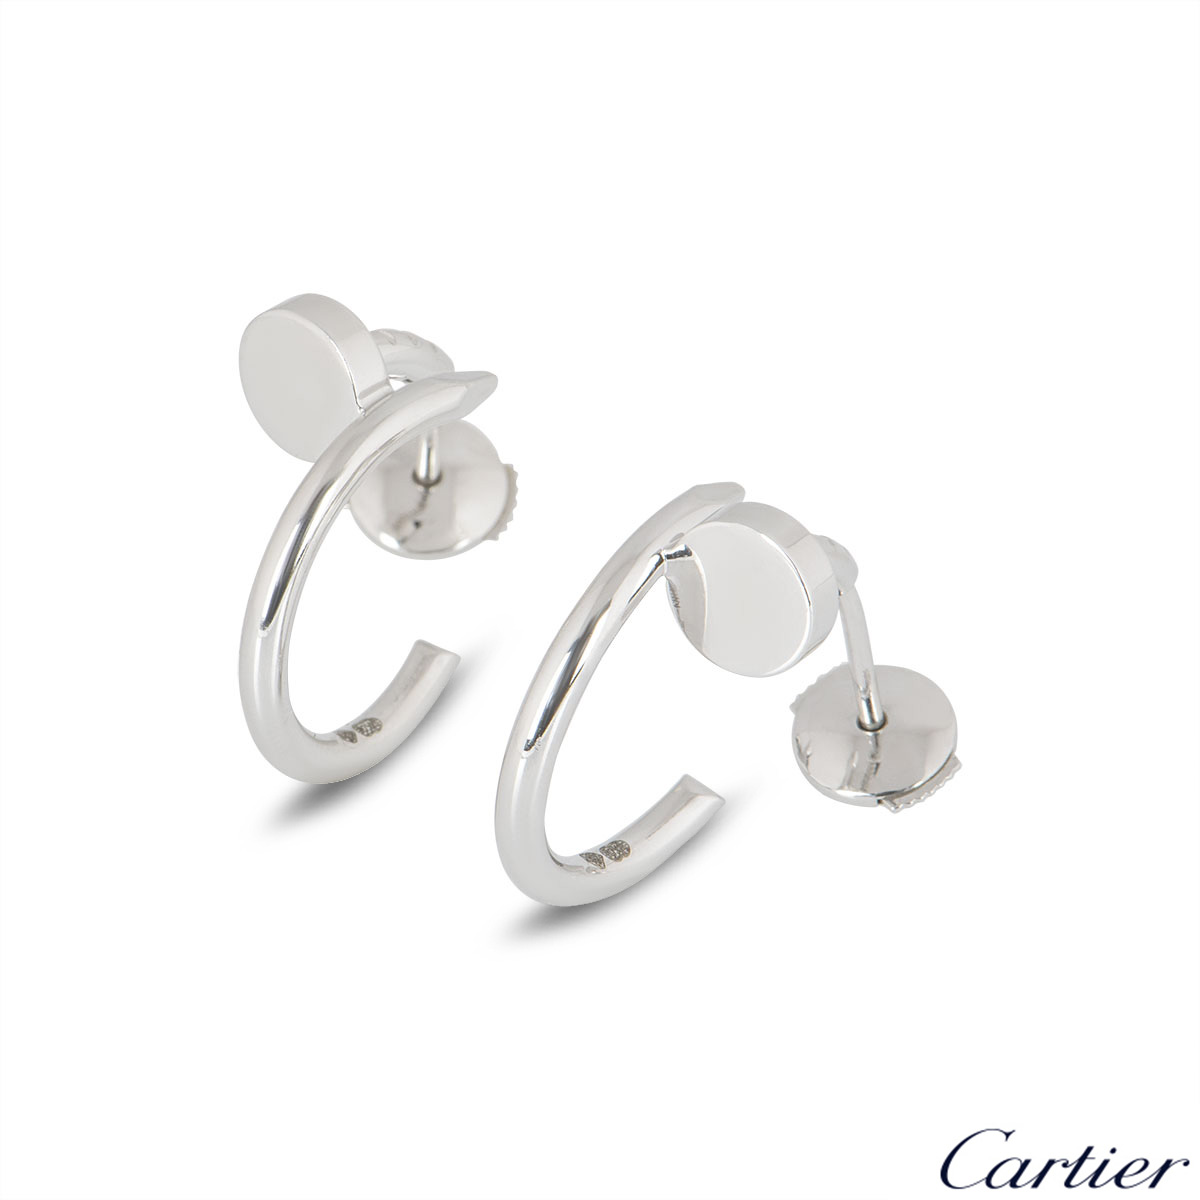 Cartier White Gold Plain Juste un Clou Earrings B8301236